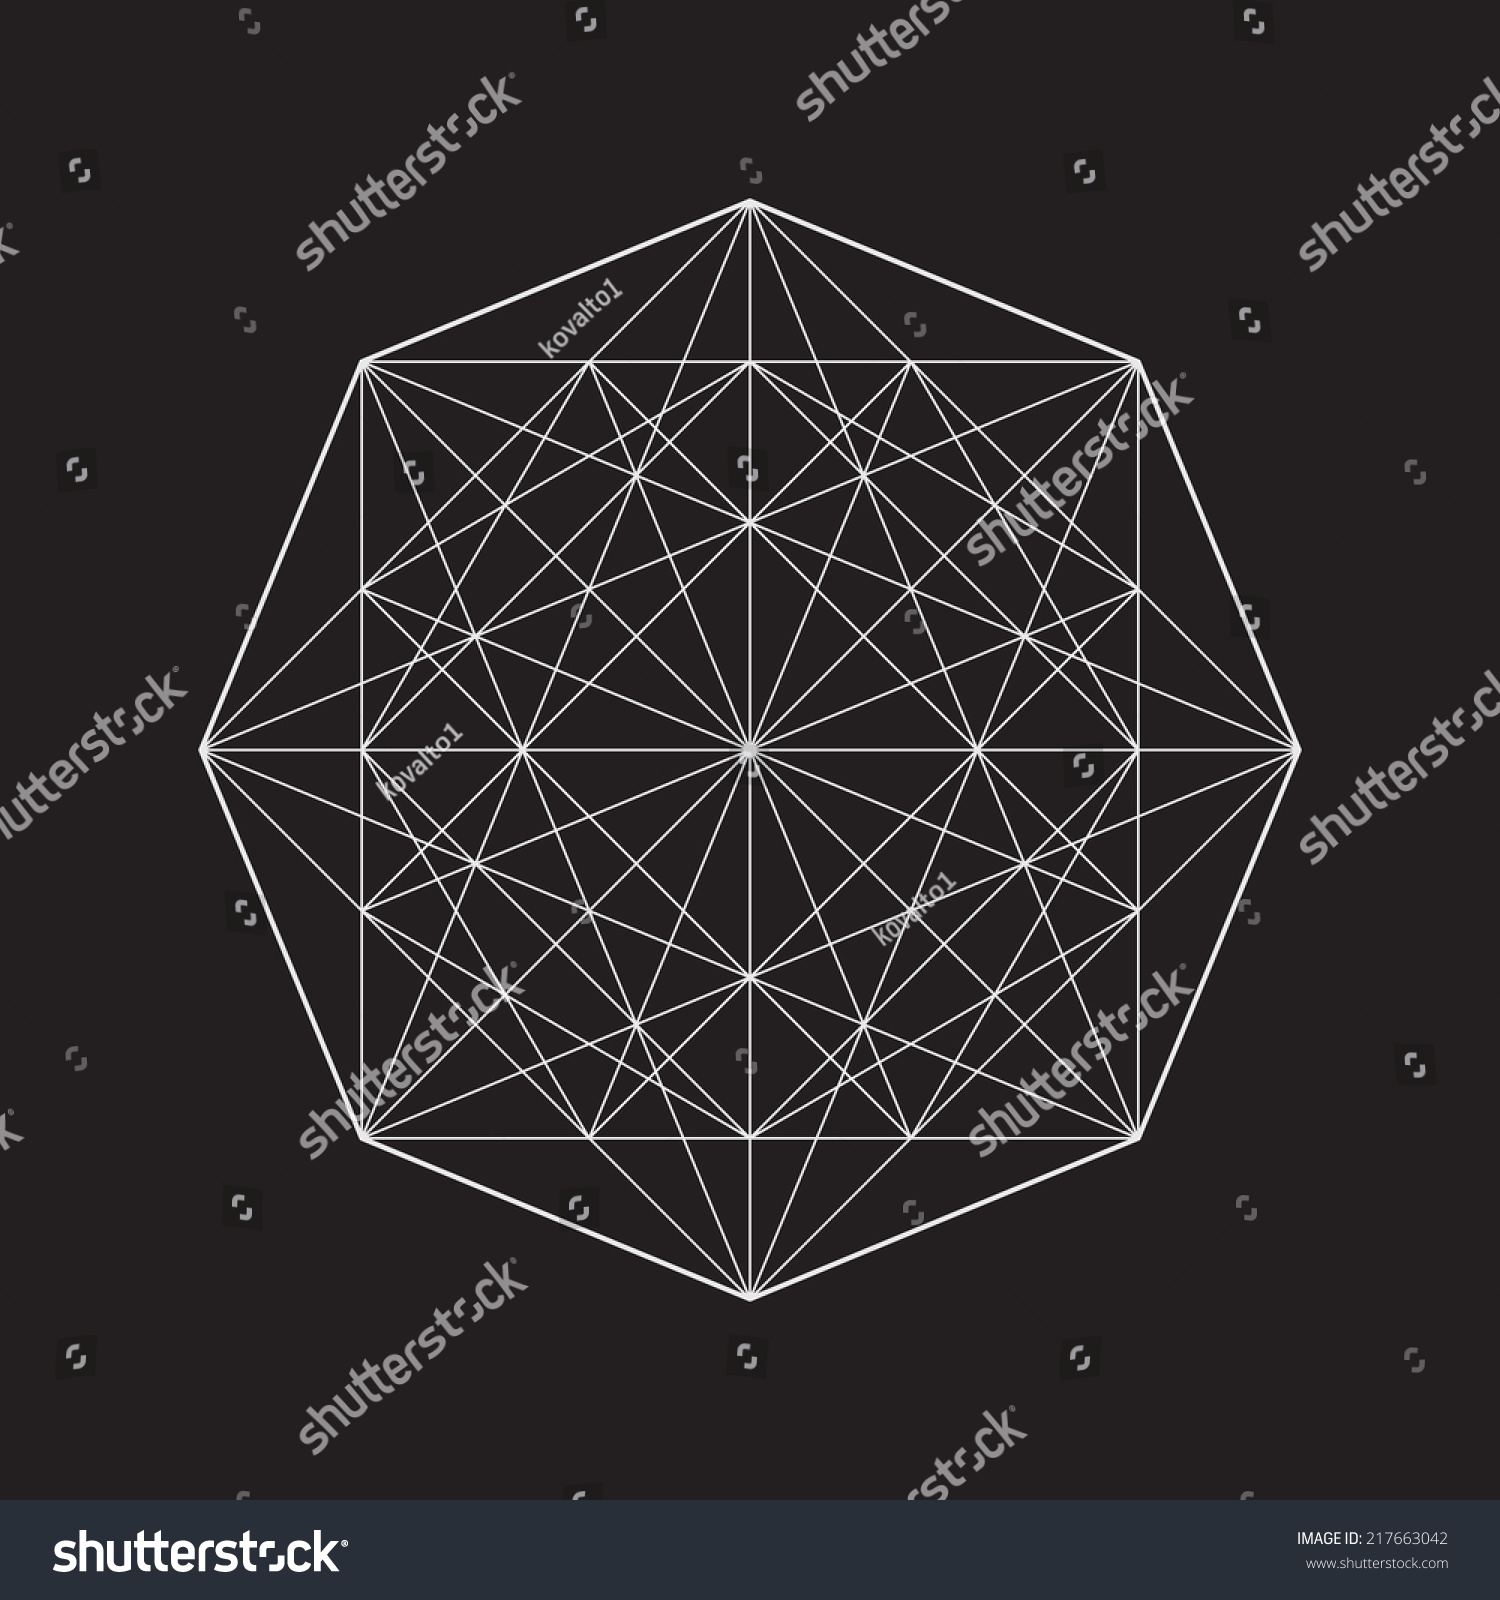 Geometric Line Design Patterns : Geometric element line design square pattern stock